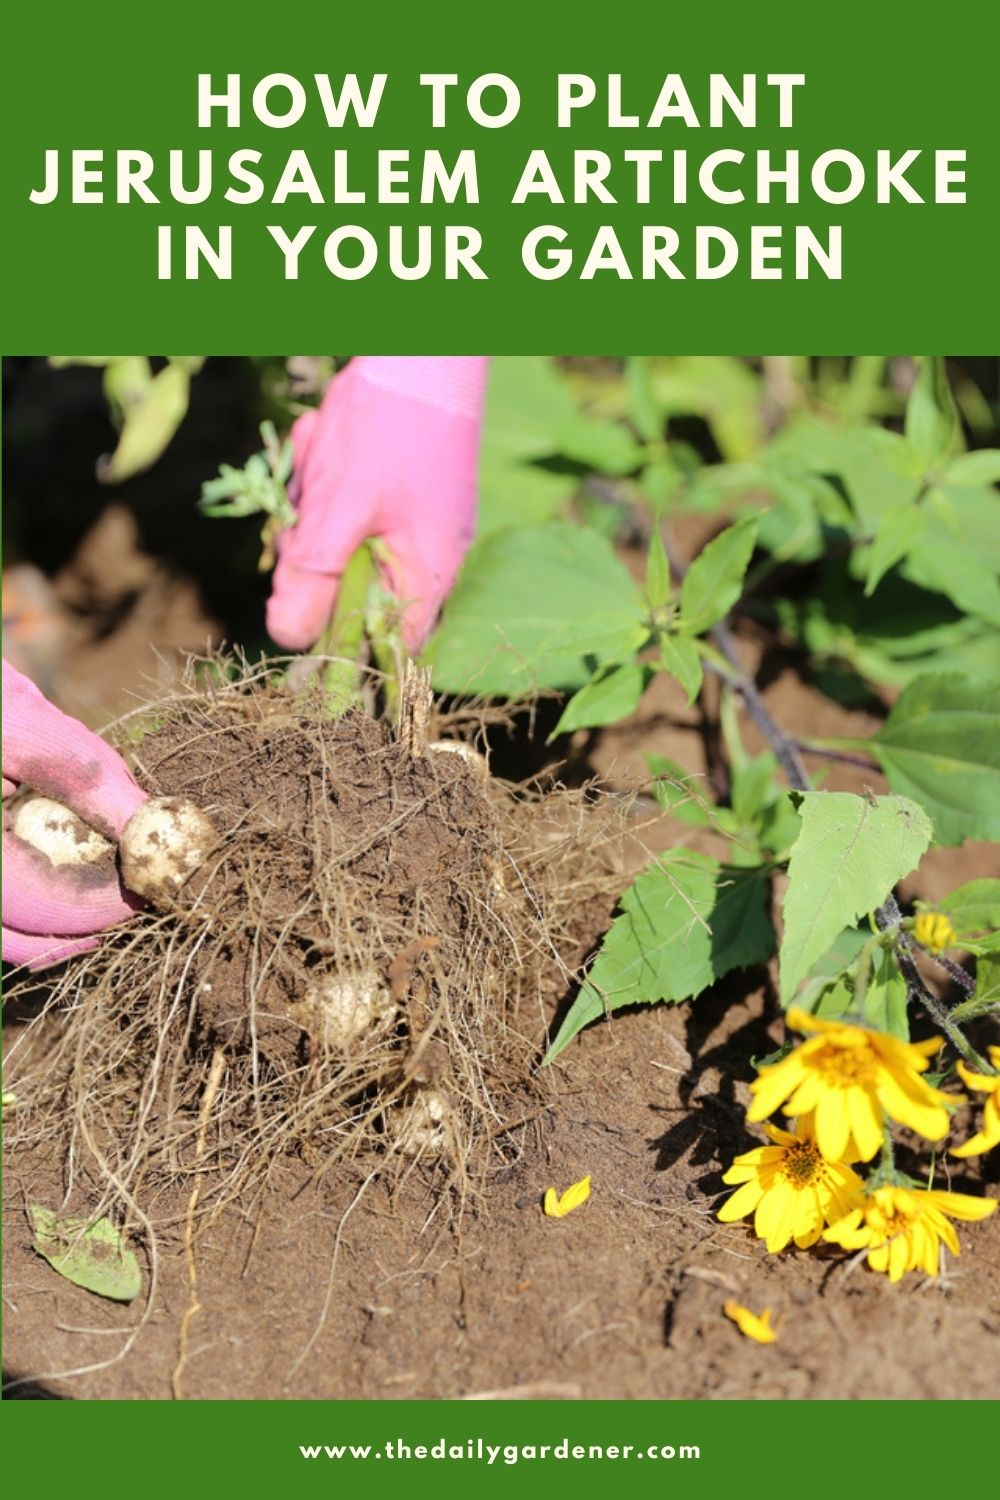 How to Plant Jerusalem Artichoke in Your Garden (Tricks to Care!) 2